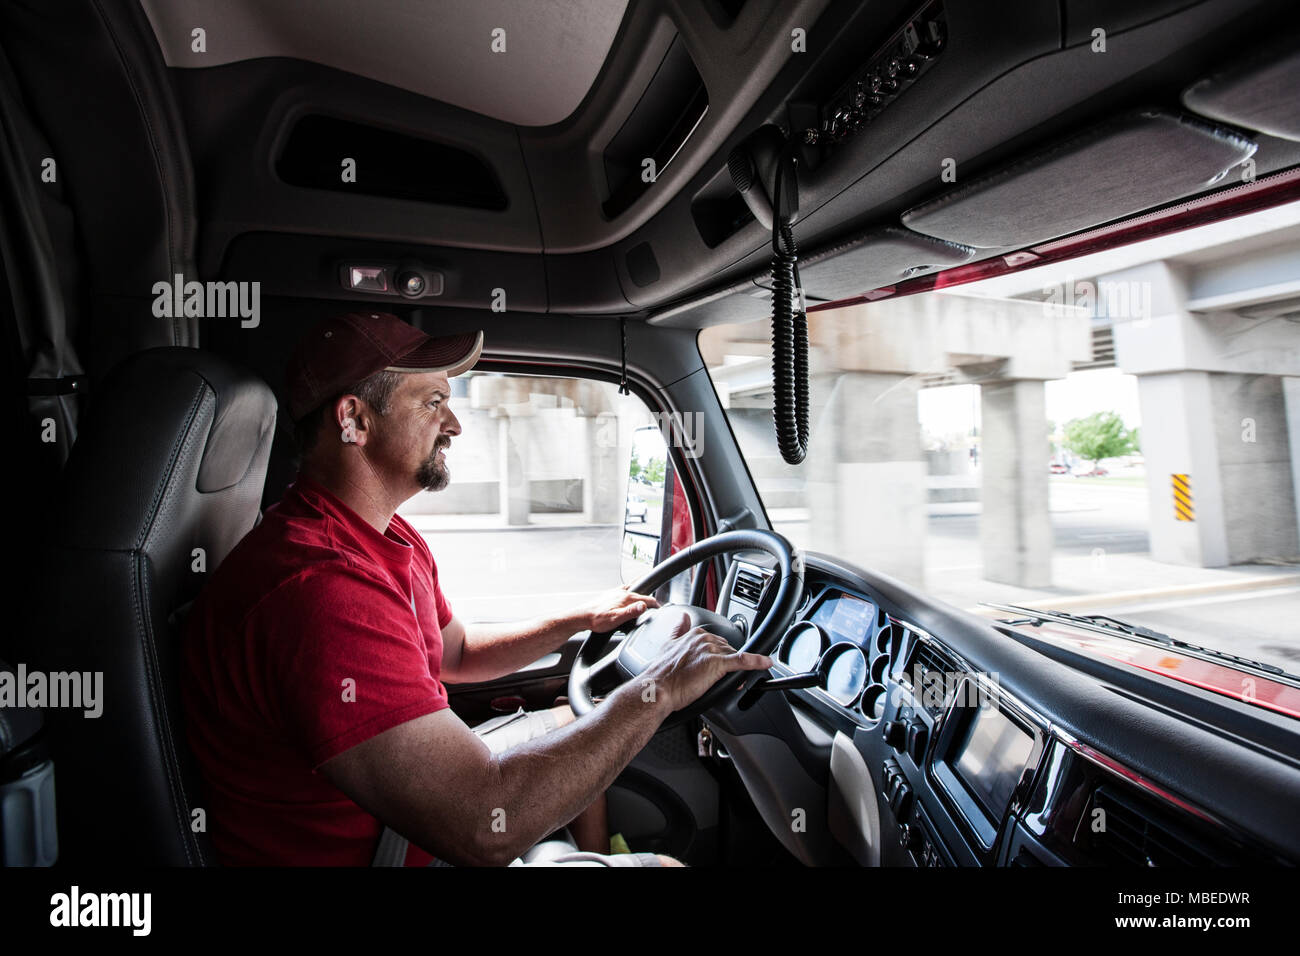 Interior cab view of a Caucasian man driving his commercial truck